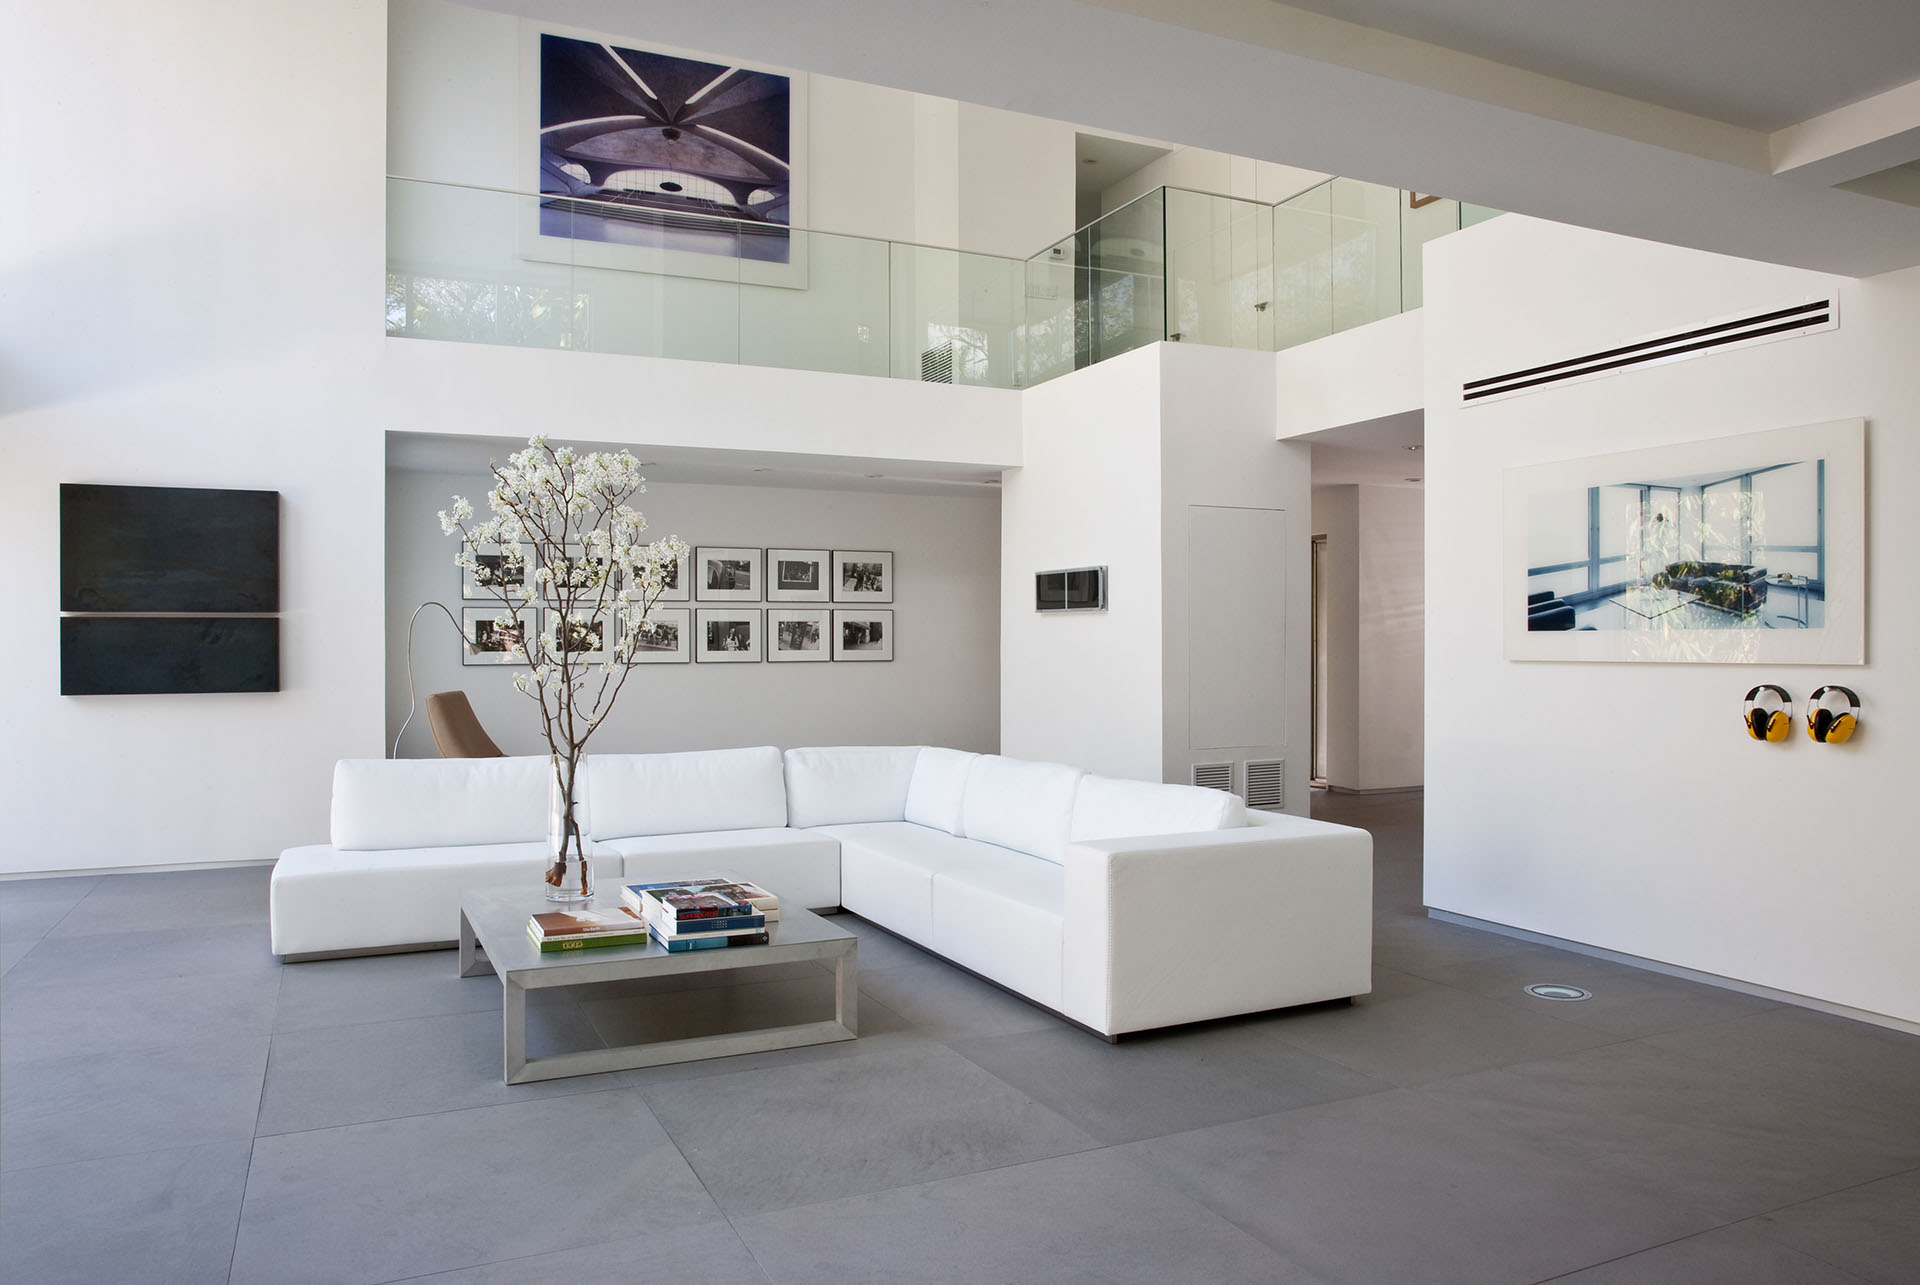 Utopia Residence by [STRANG] Architecture